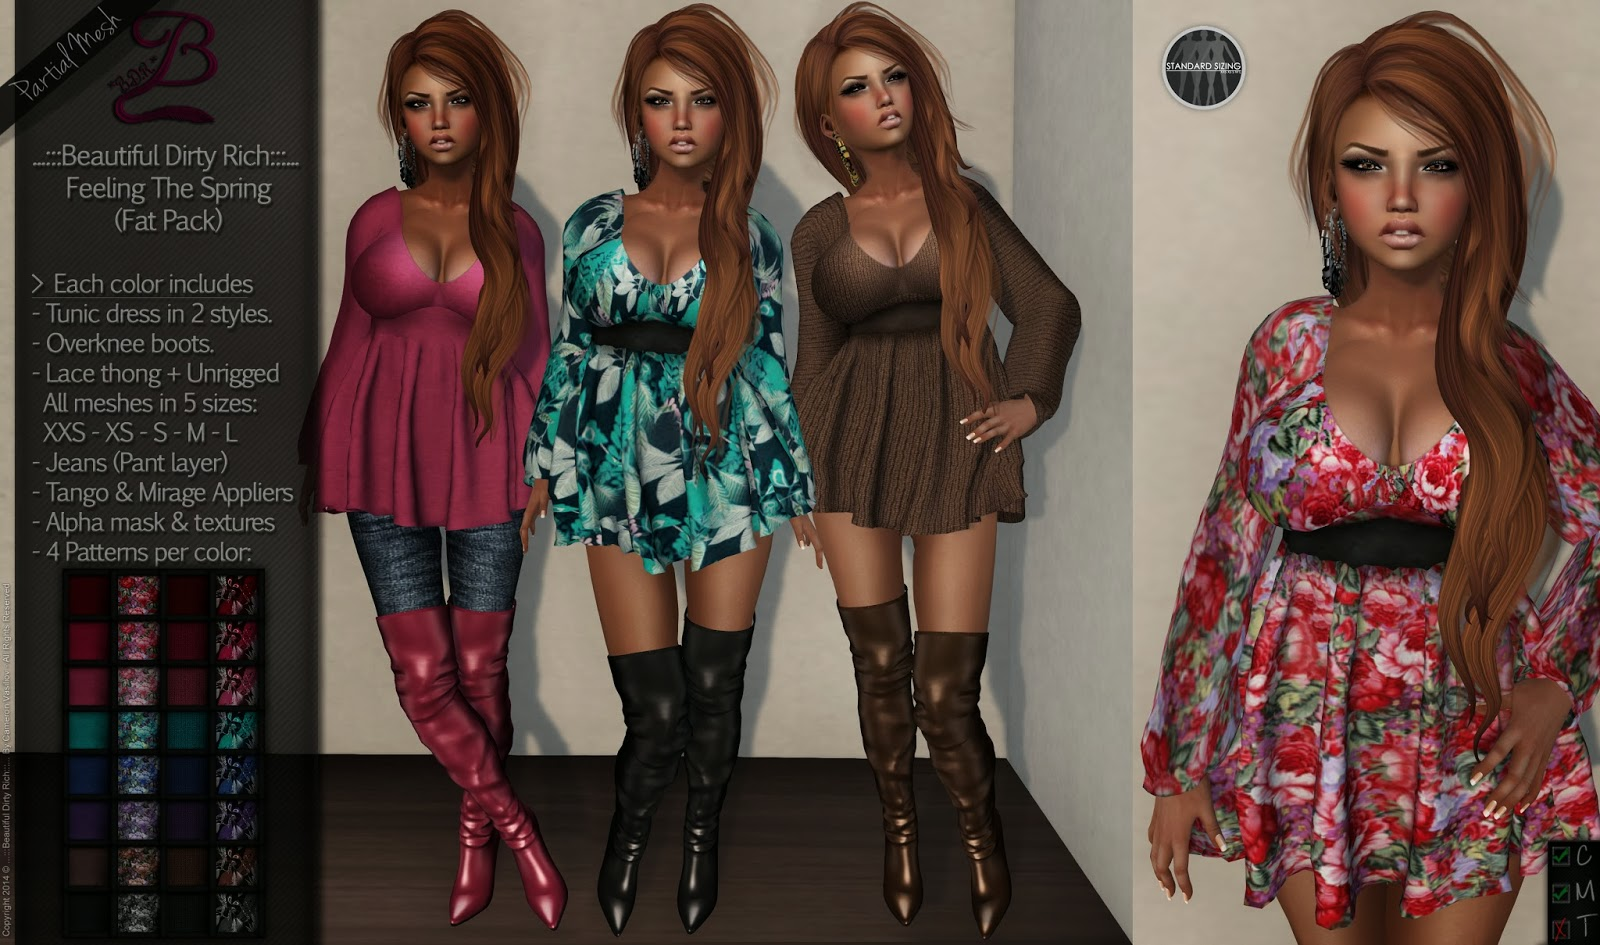 https://marketplace.secondlife.com/p/BDR-Feeling-The-Spring-Fat-Pack-Save-50/5795021